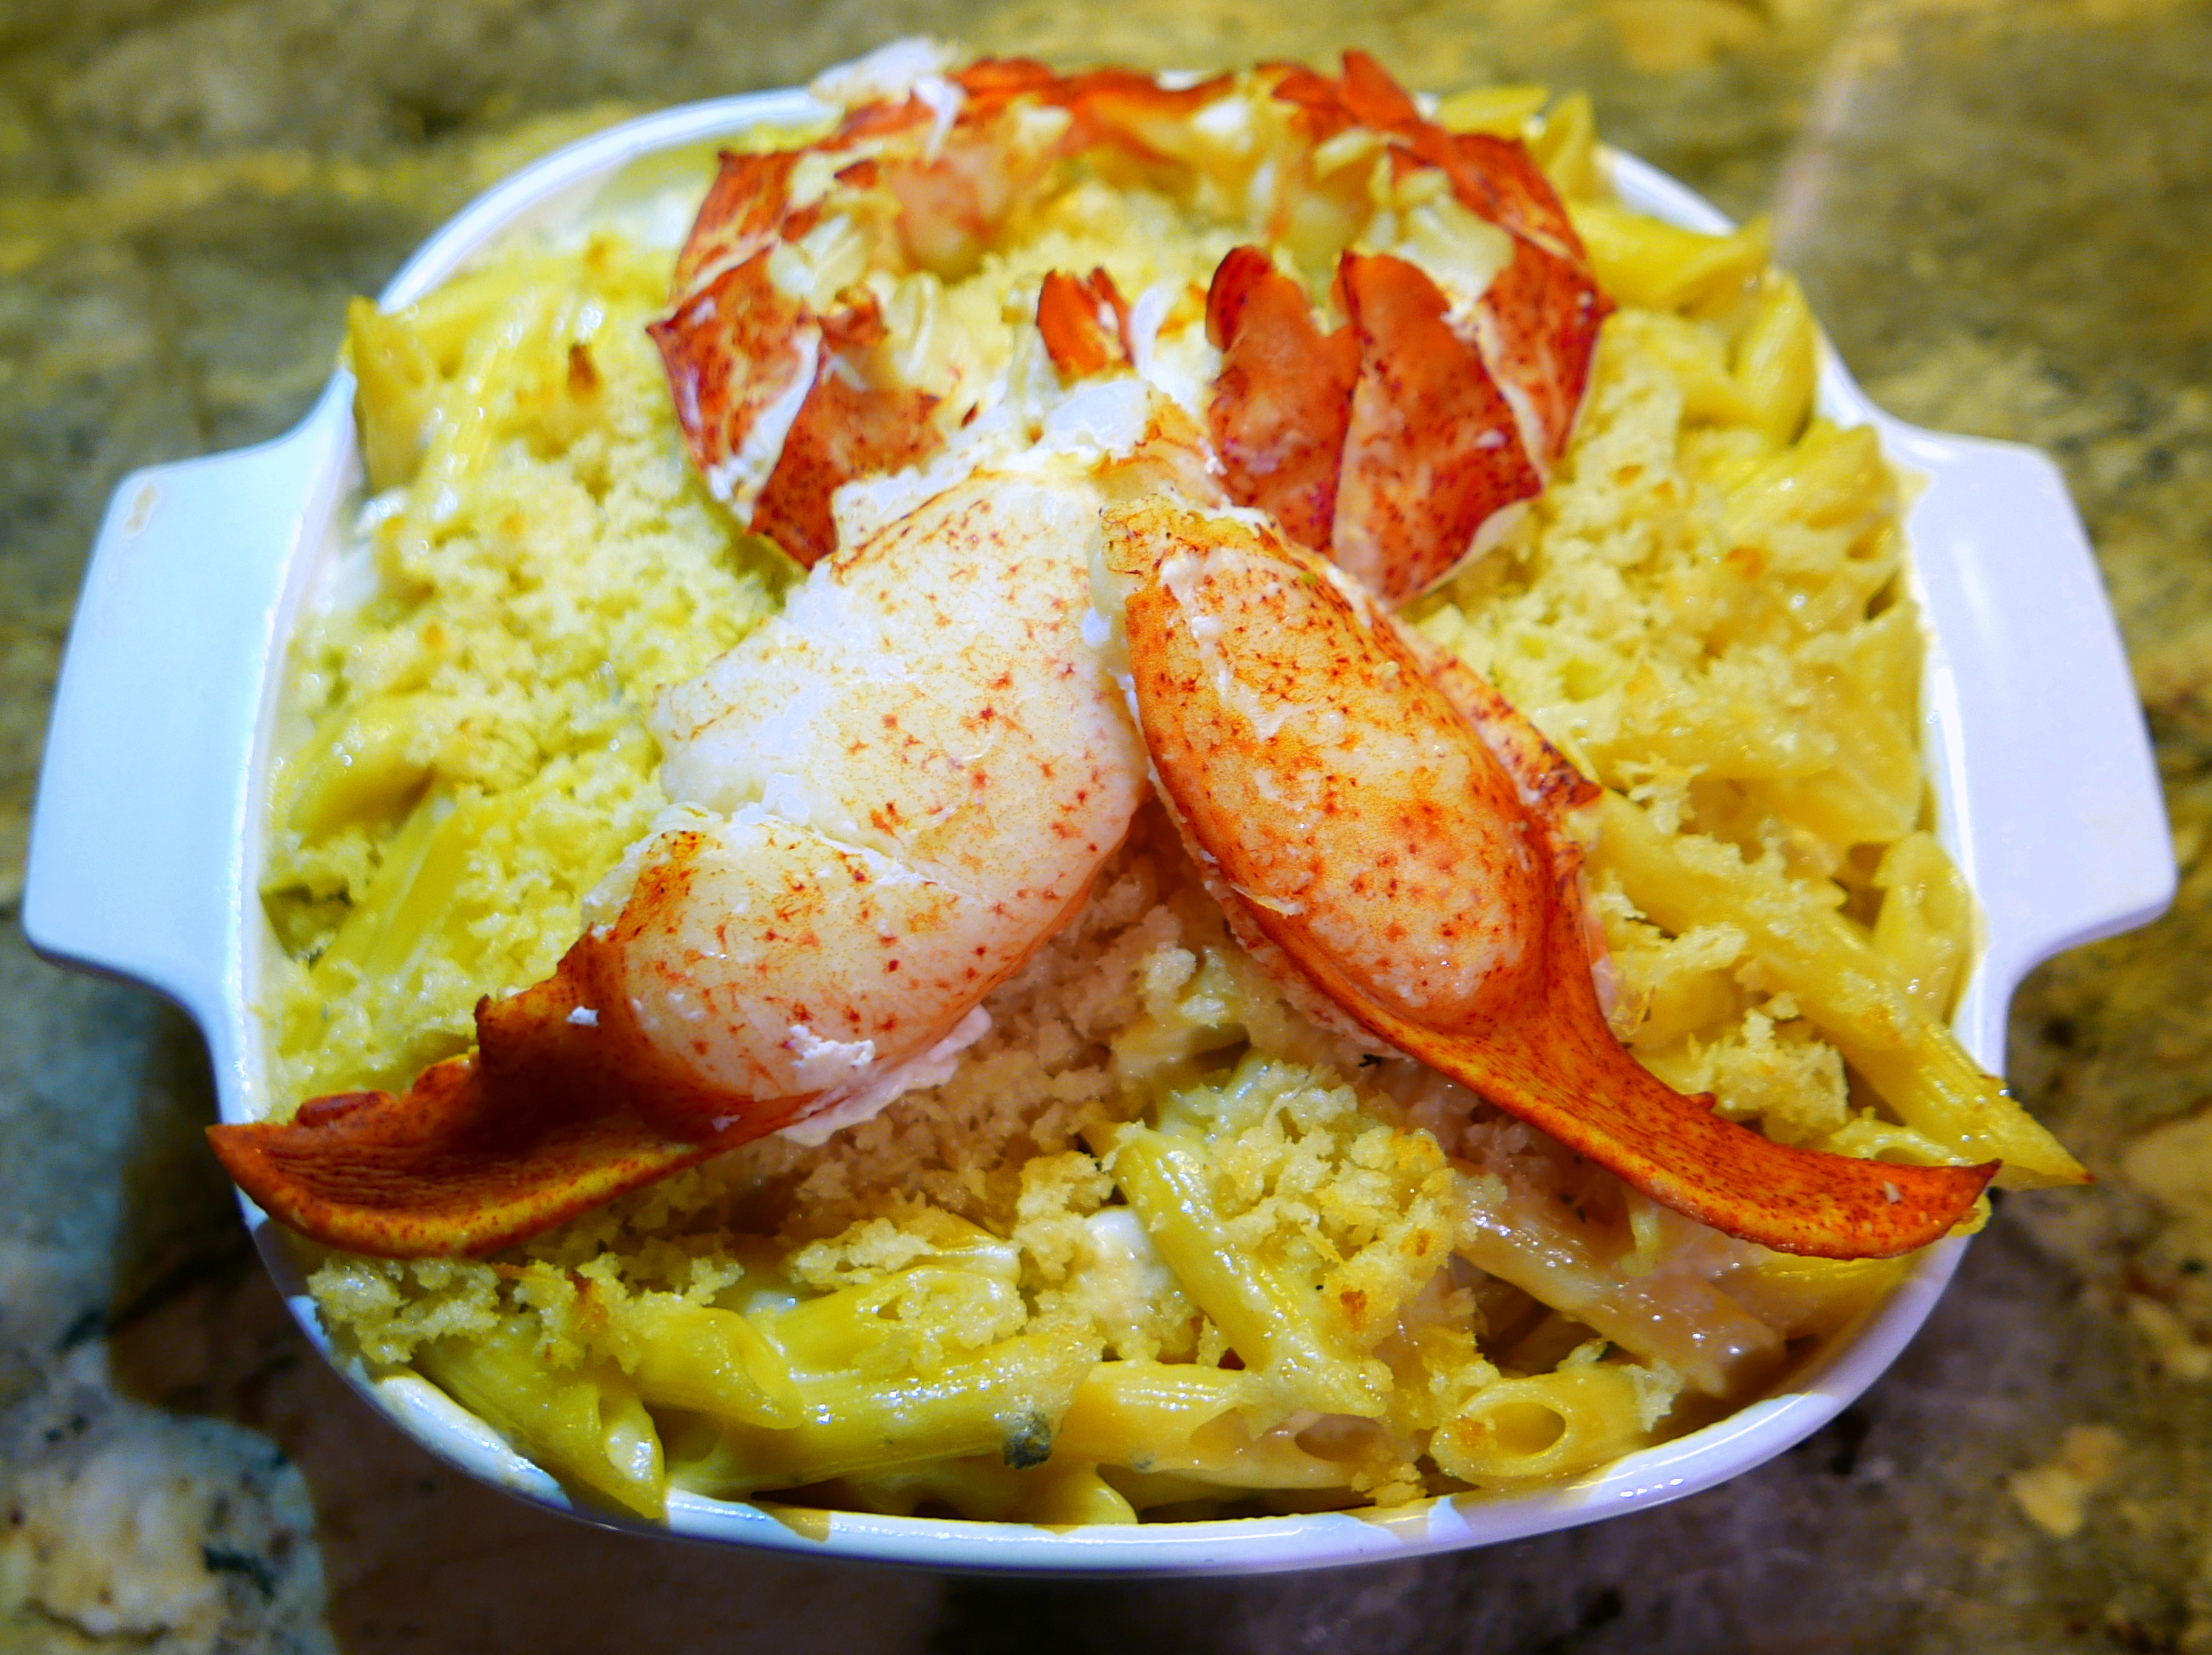 RECIPE: Lobster Mac and Cheese